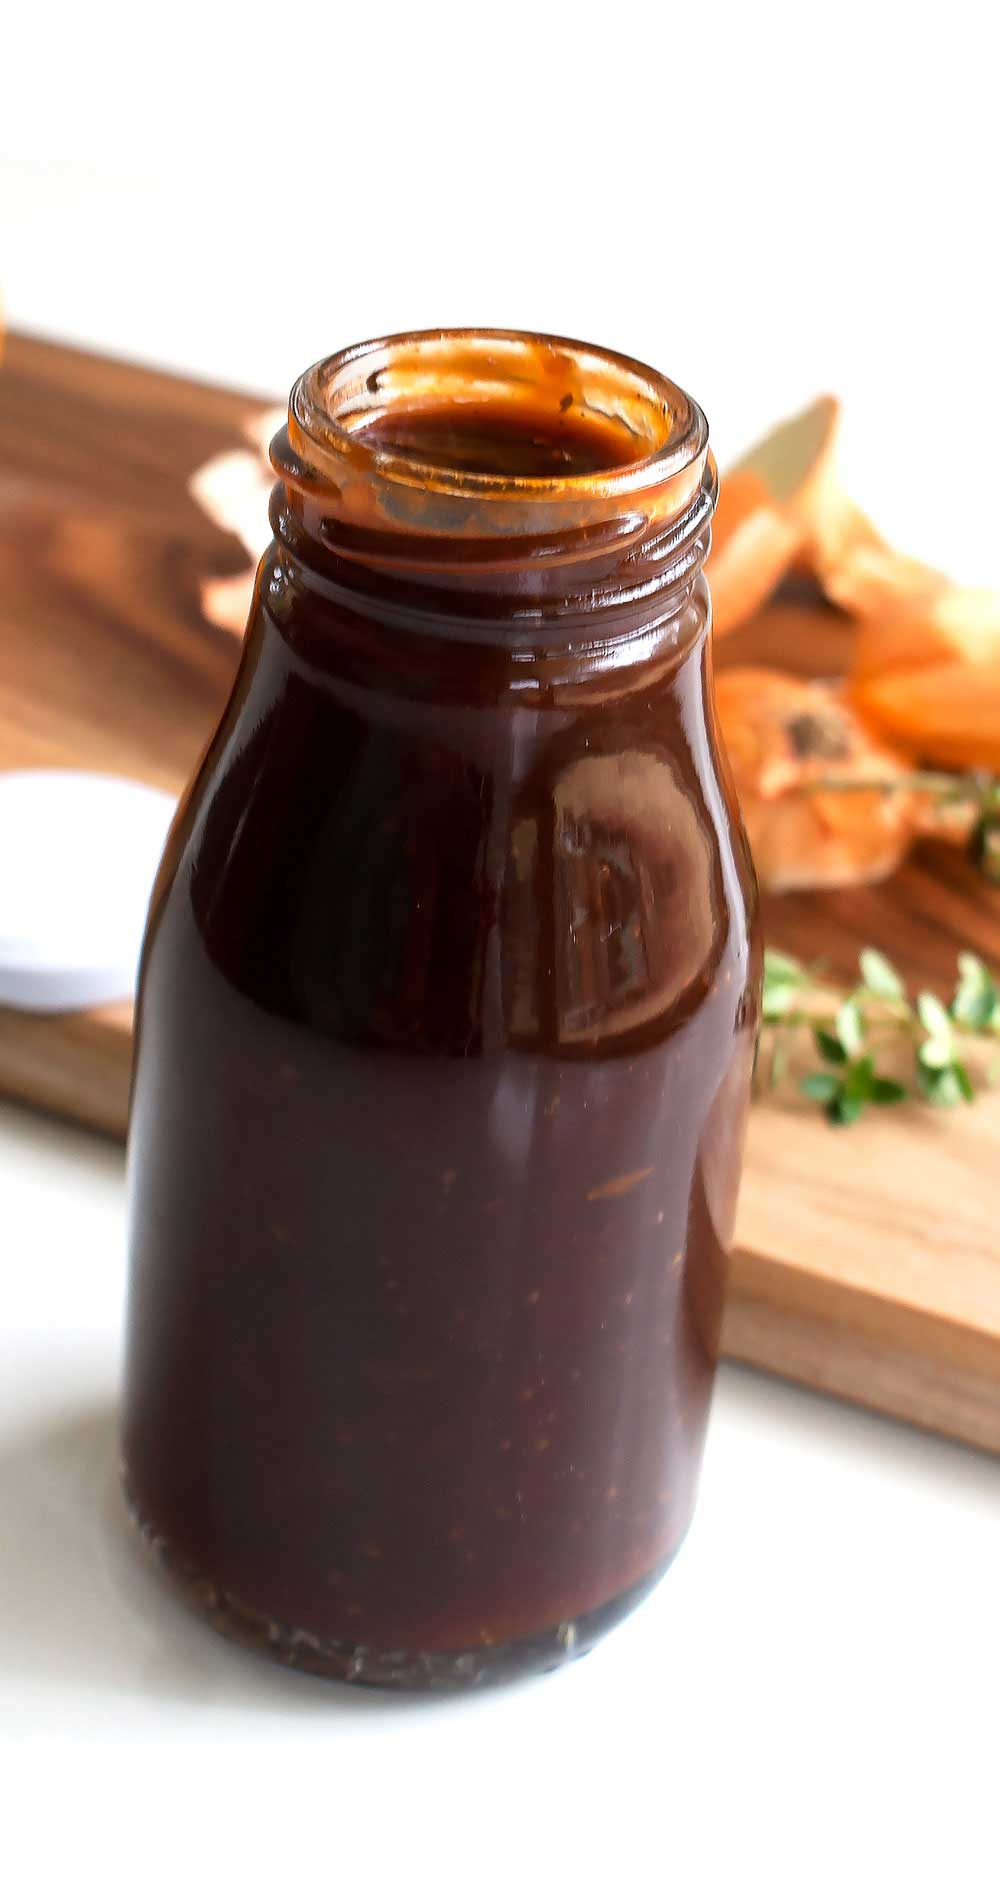 This homemade barbecue sauce is the perfect mix of sweet and tangy. A straight forward recipe that will become a firm favourite.